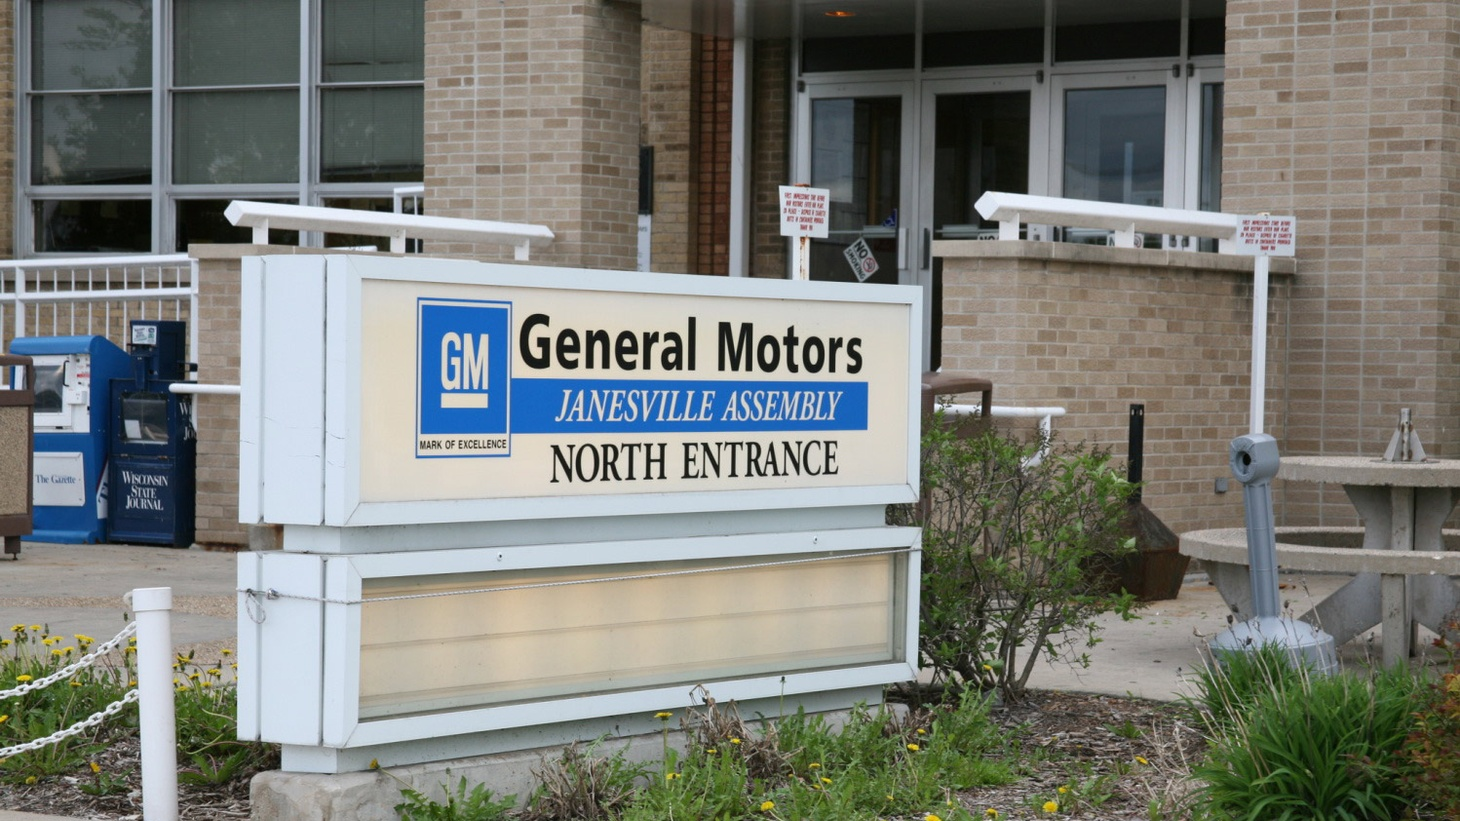 Janesville, Wisconsin is the hometown of Republican House Speaker Paul Ryan. But he couldn't prevent the closing of the General Motors factory after 100 years. On this Memorial Day rebroadcast of To the Point, we hear what's happened to what once was a model of American middle-class unity.